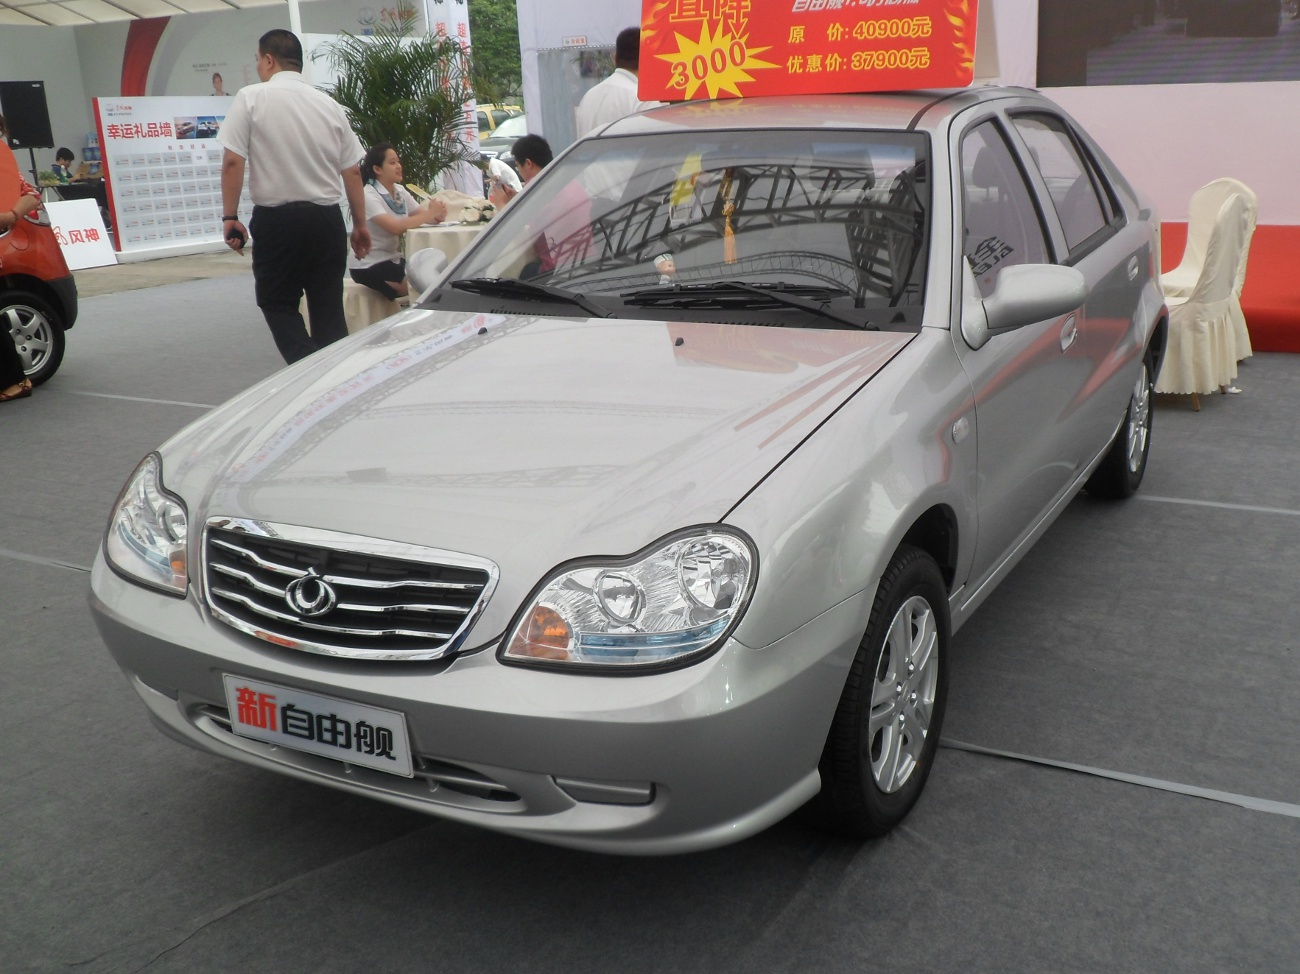 geely ck 2007 images #2